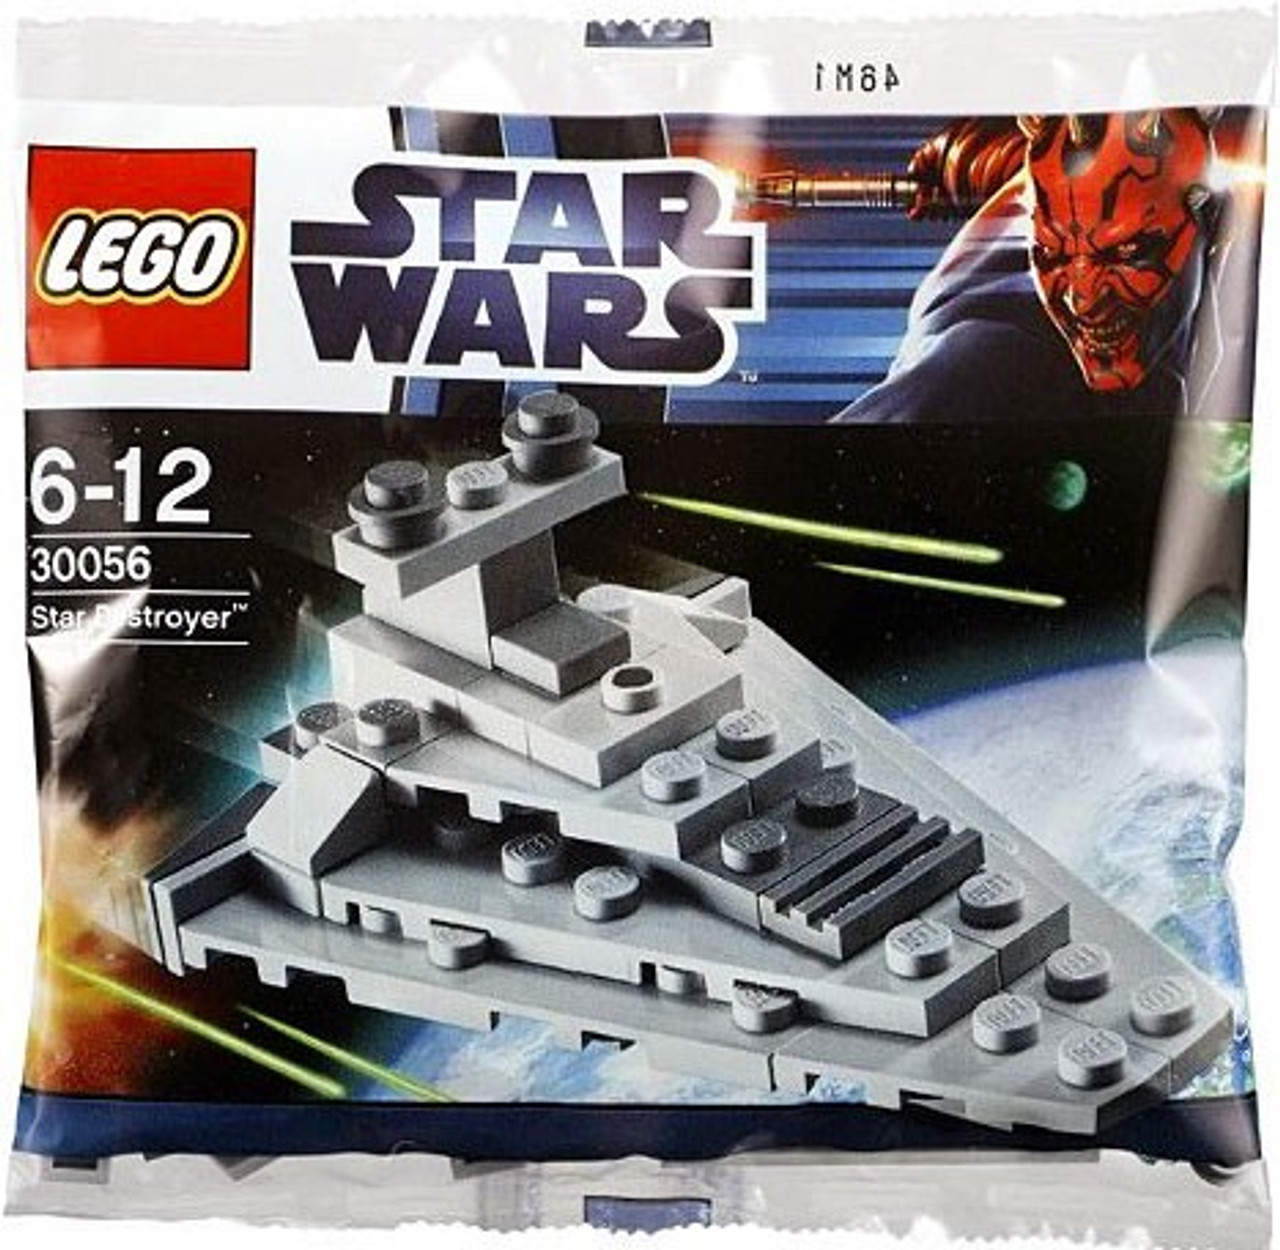 Lego Star Wars A New Hope Star Destroyer Mini Set 30056 Bagged Toywiz